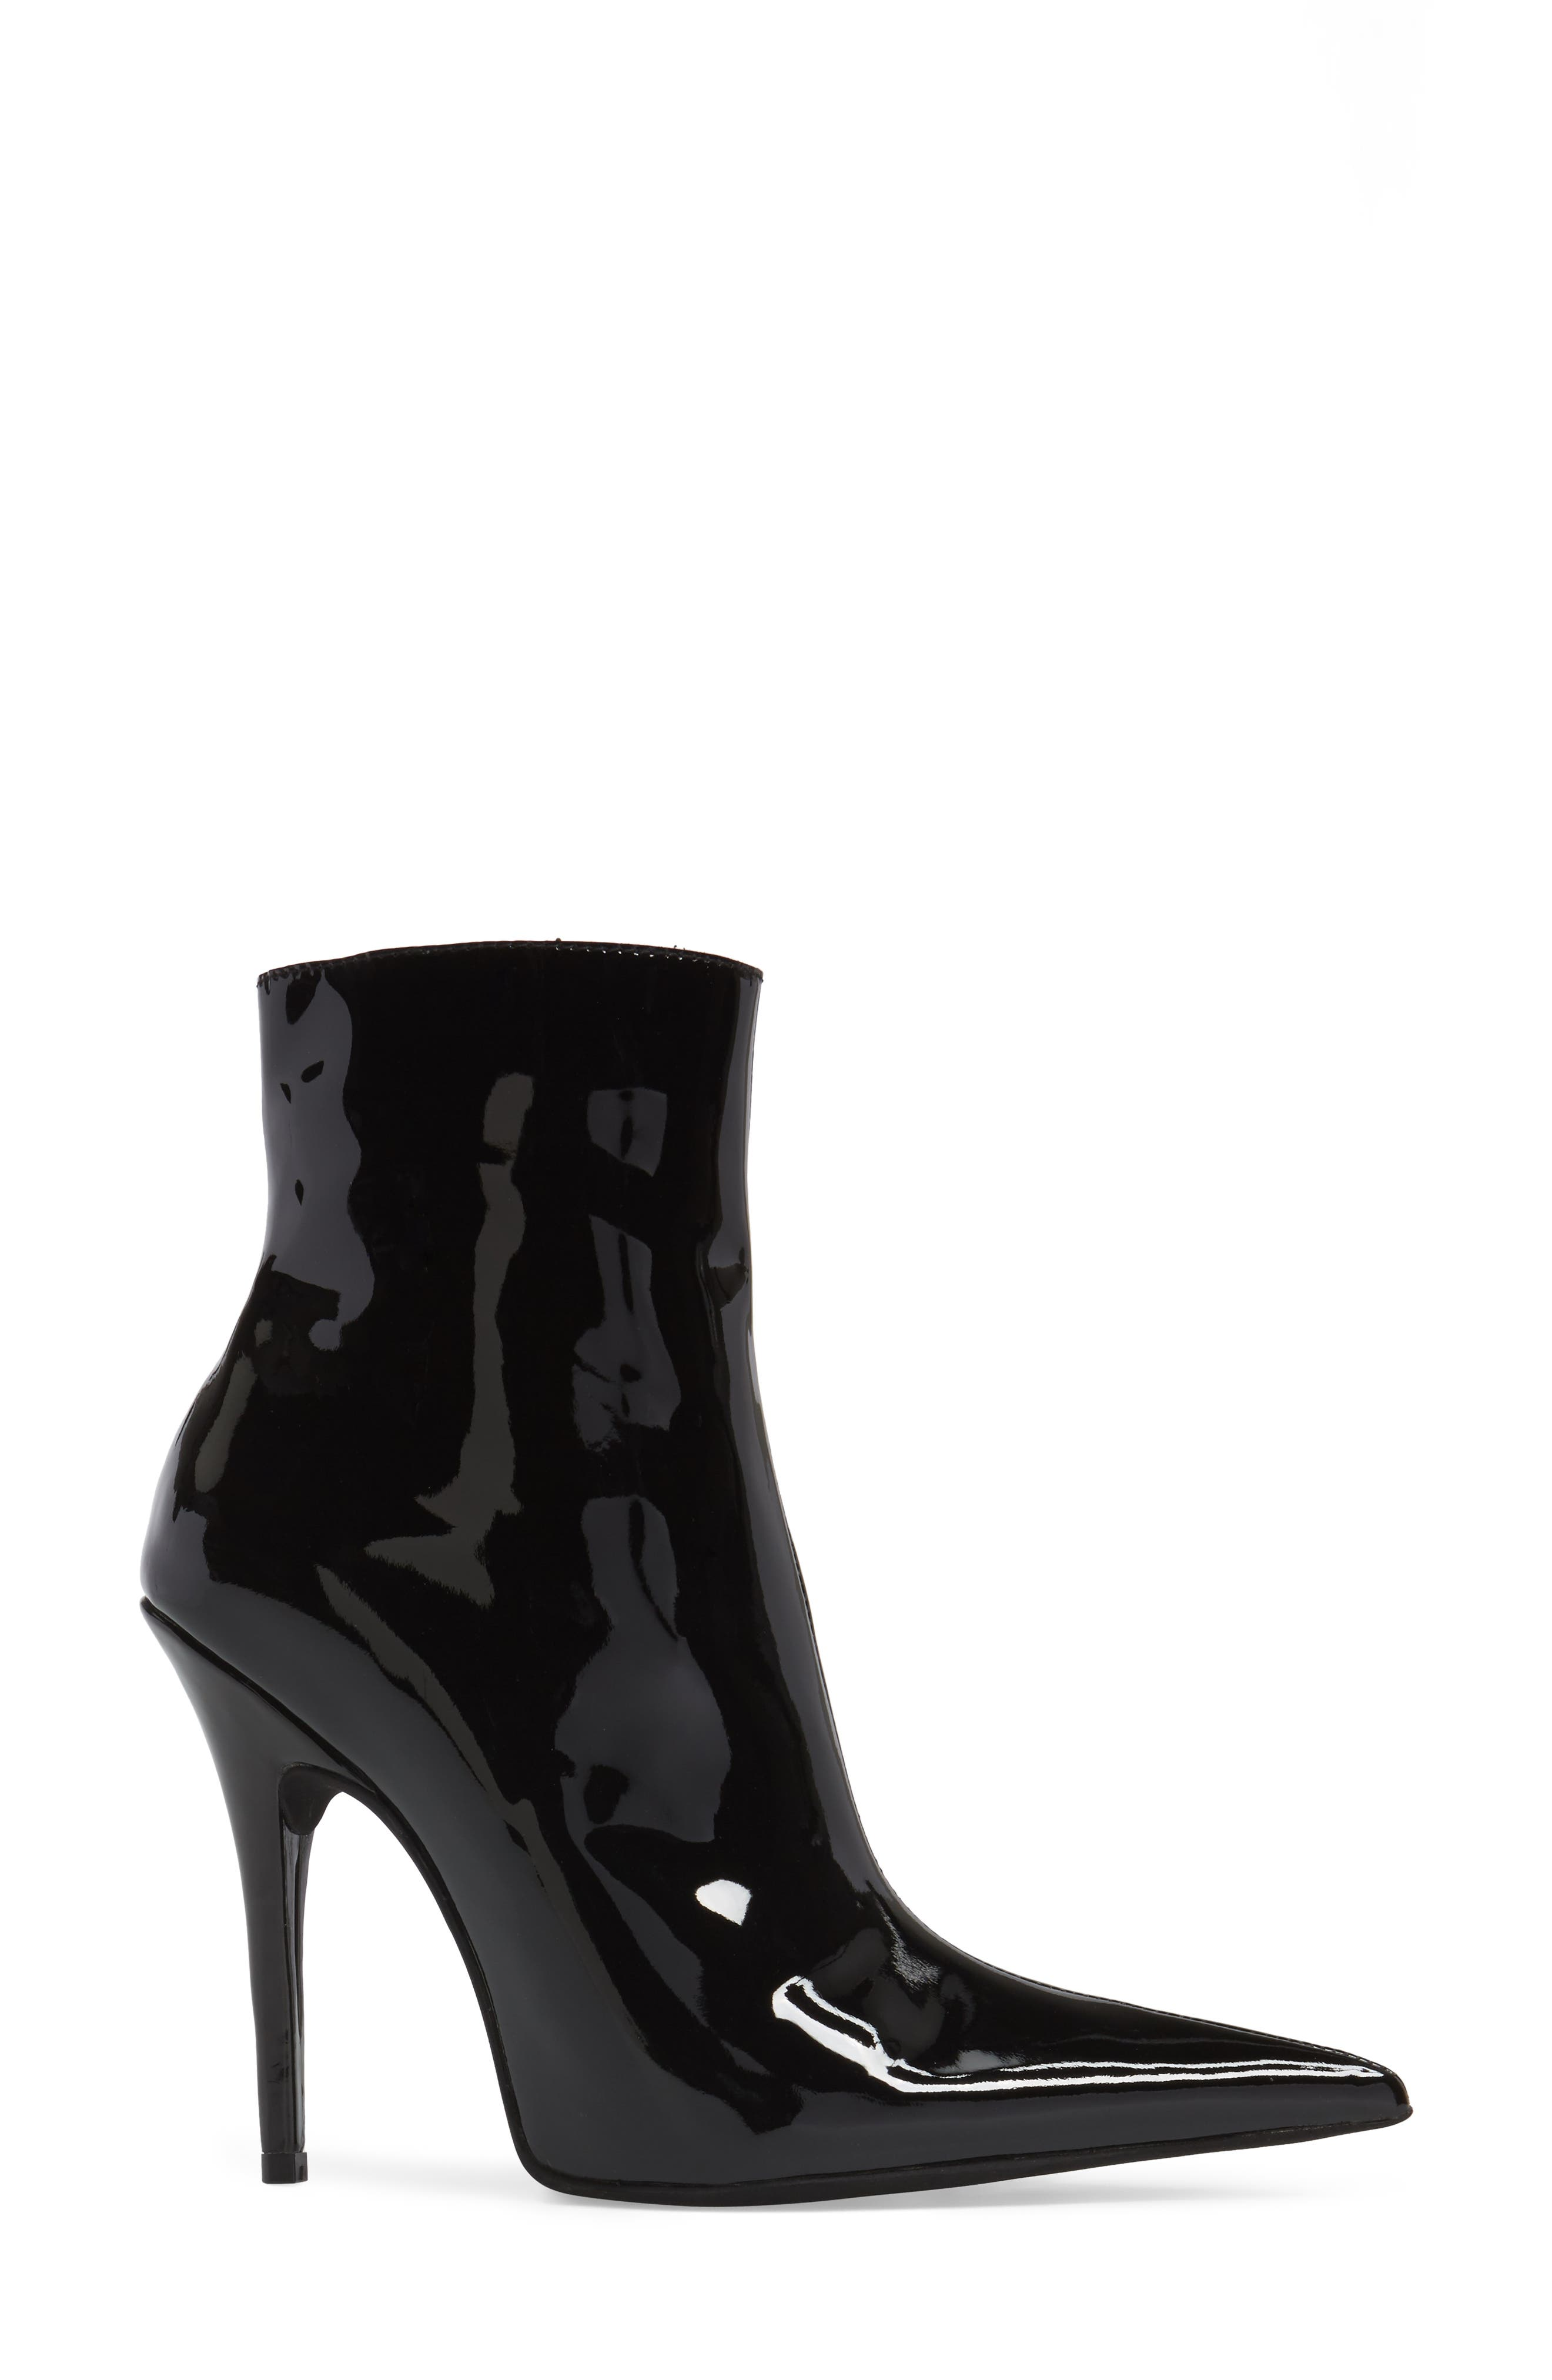 Vedette Pointy Toe Booties,                             Alternate thumbnail 3, color,                             Black Patent